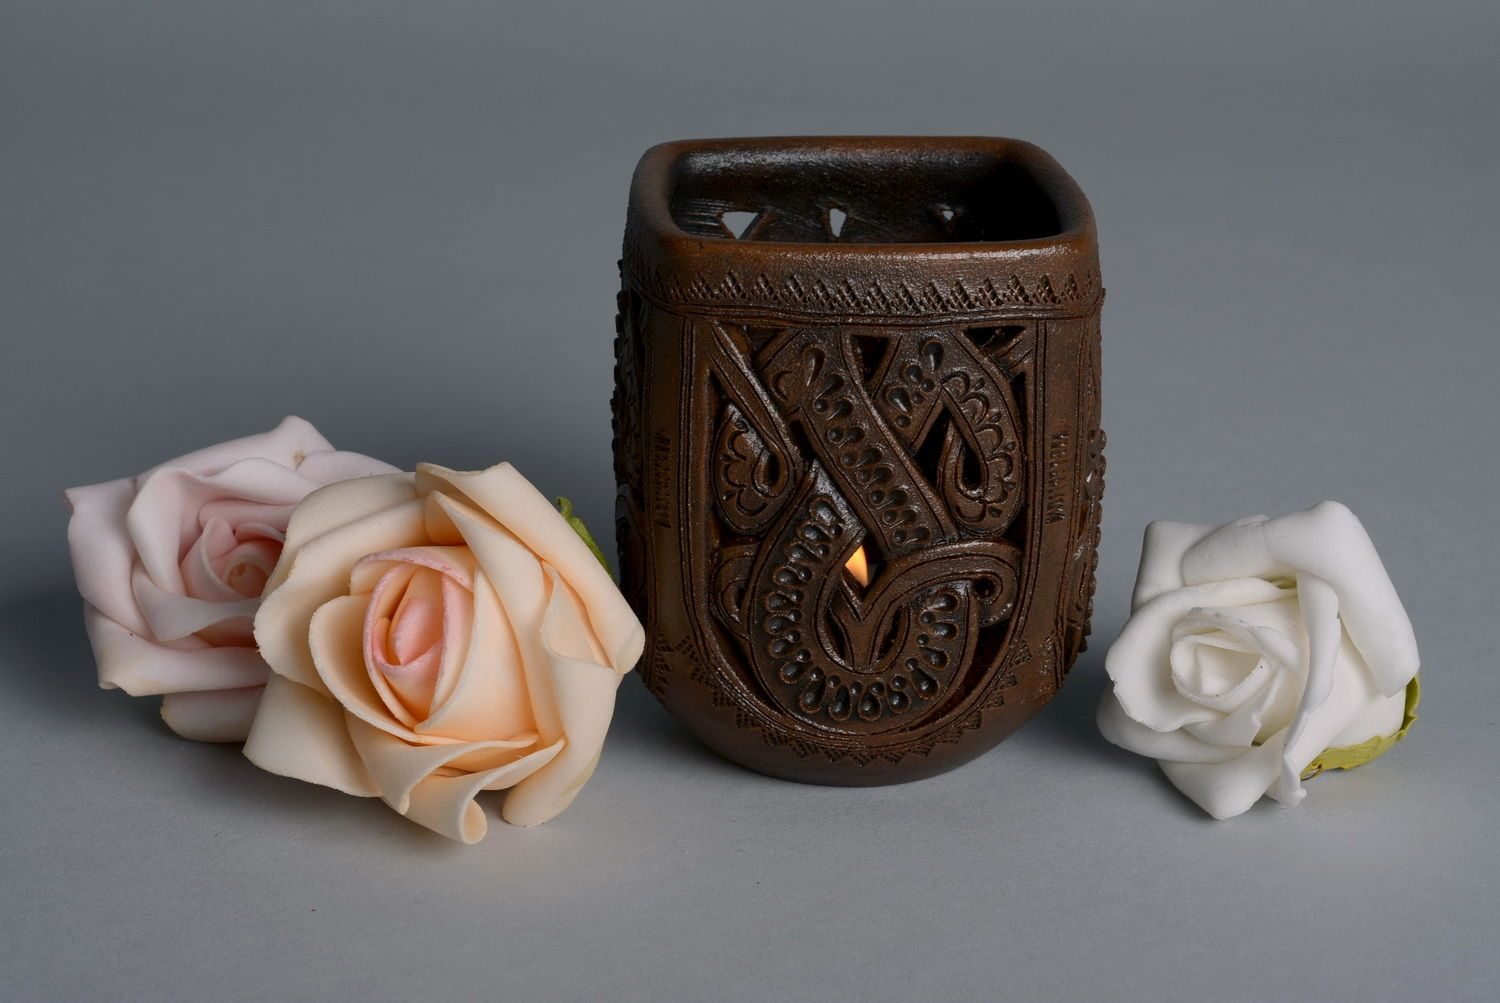 3 inches handmade brown vase for desk decore holder for pens and pencils 0,33 lb photo 4